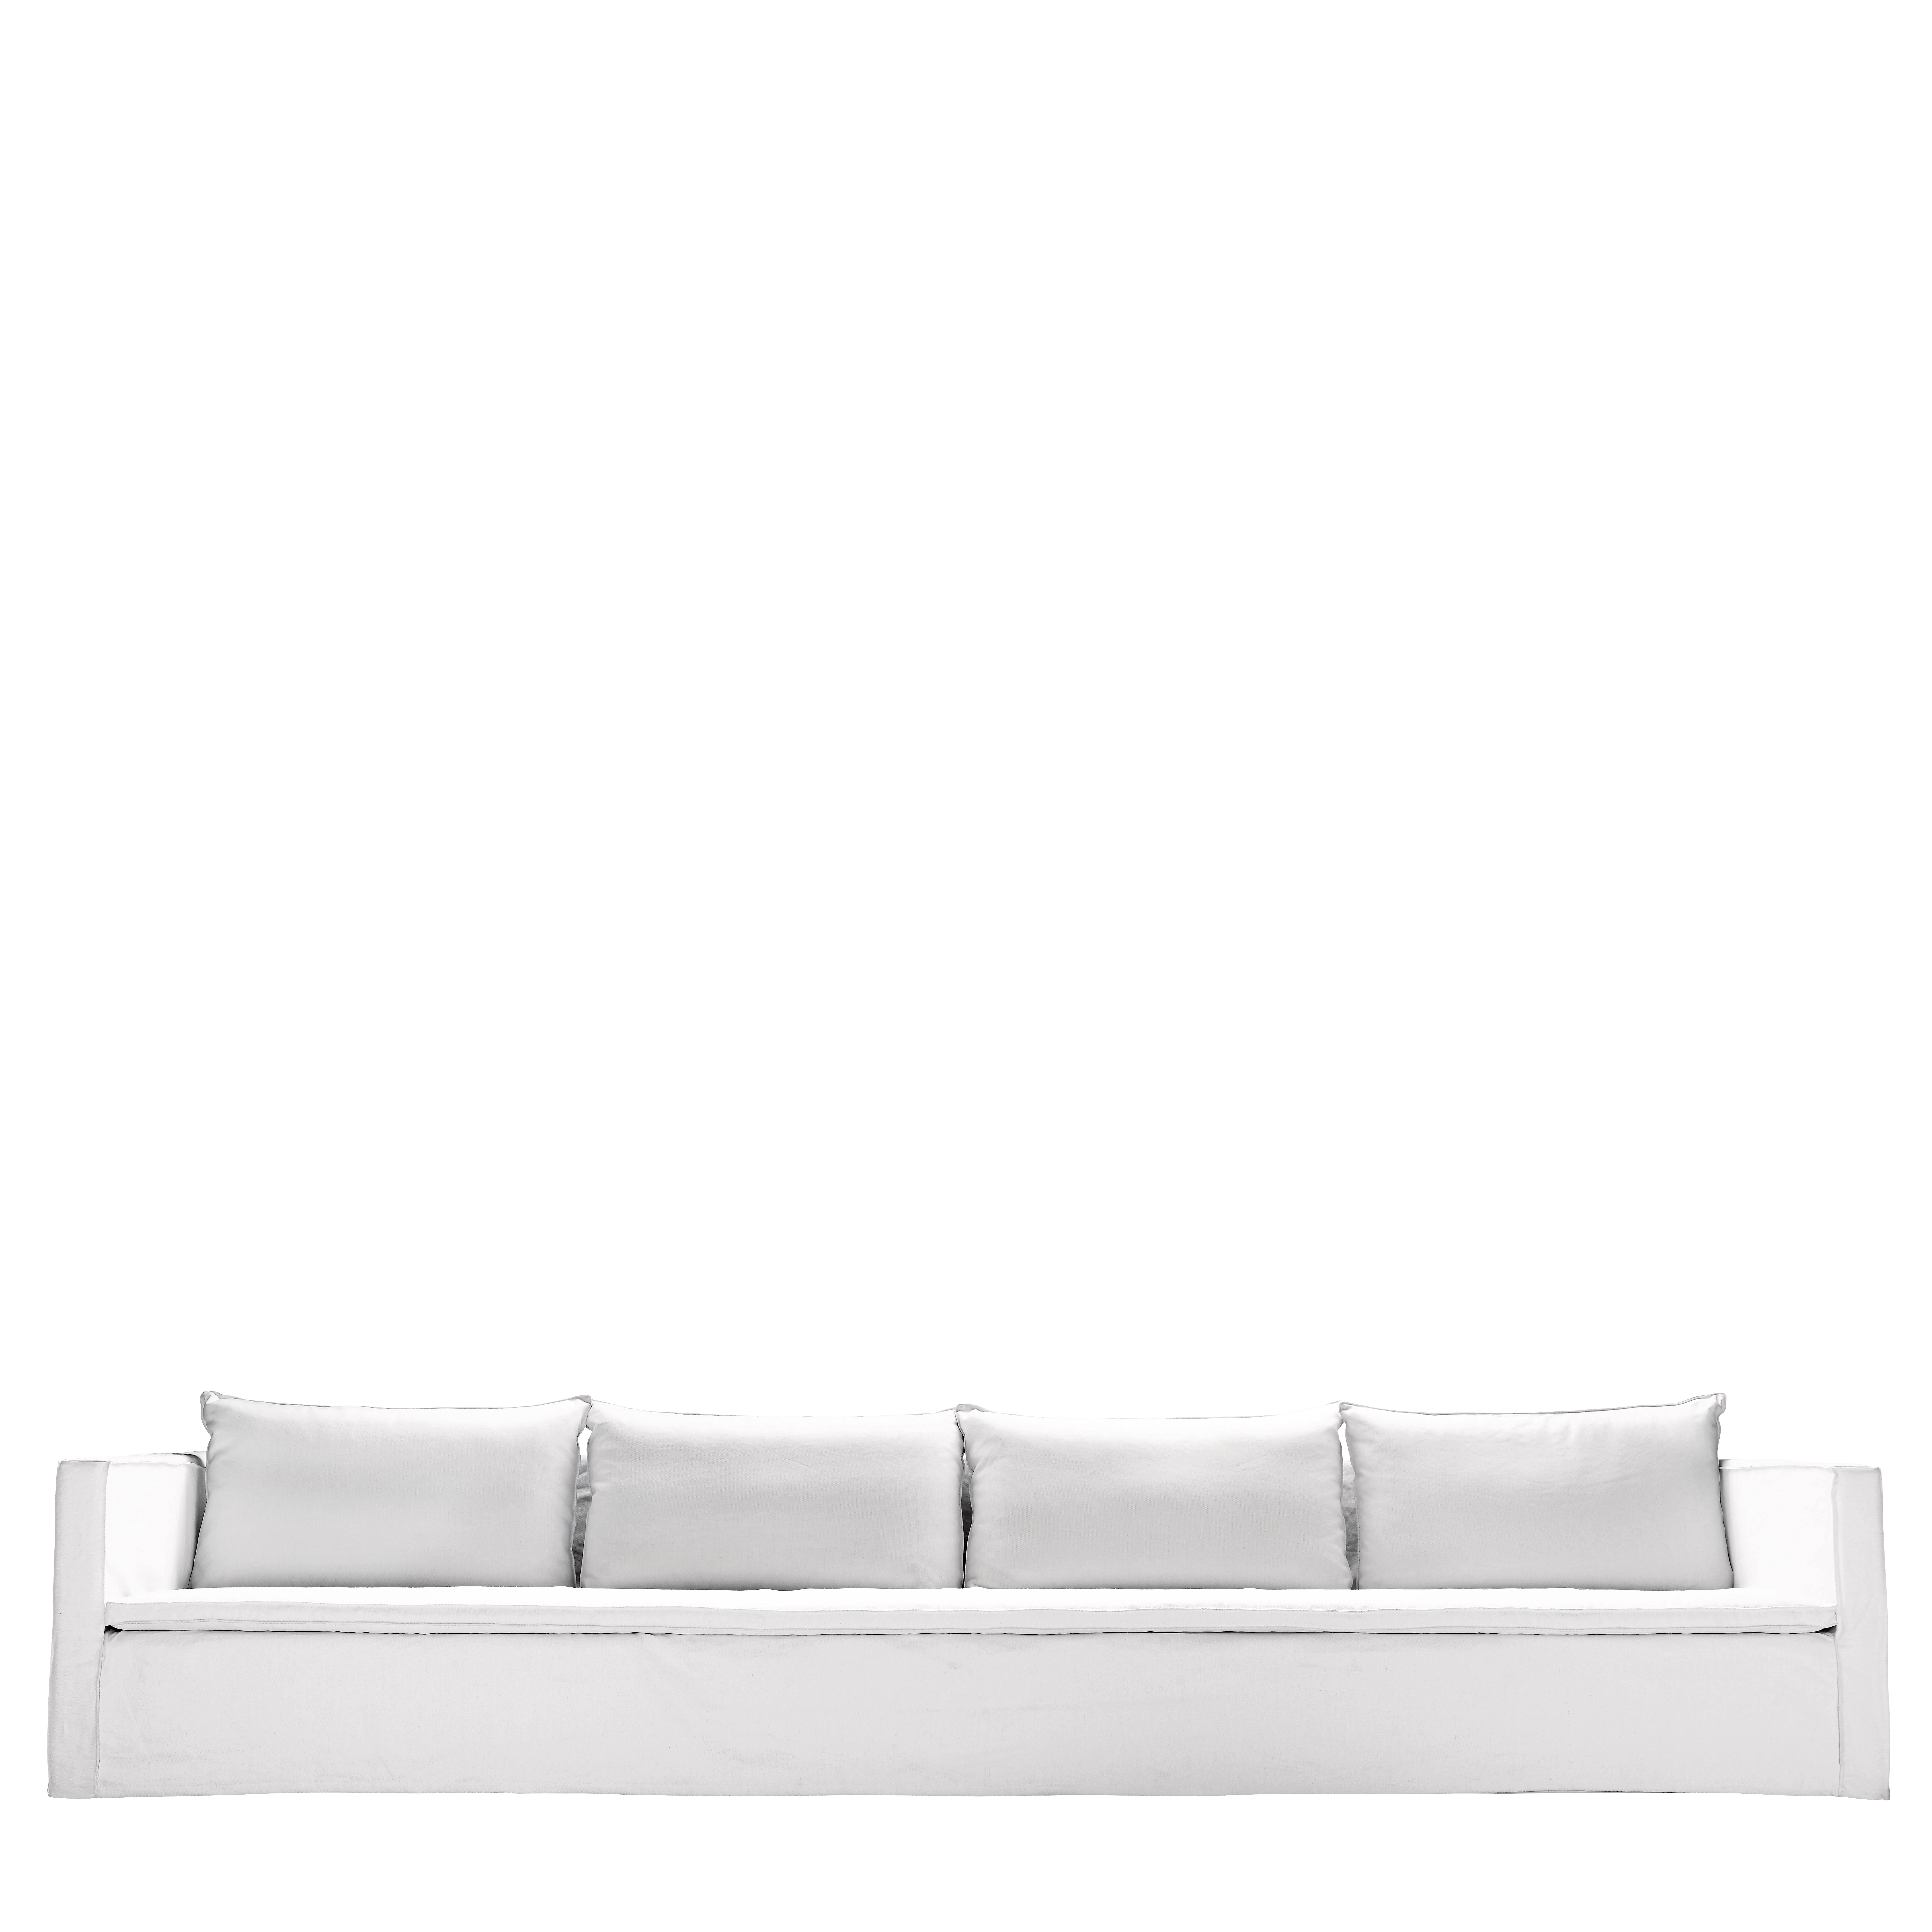 moroccan sofa base comfy beds uk sofaxxl 400 x 94 h 75 cm products tine k home